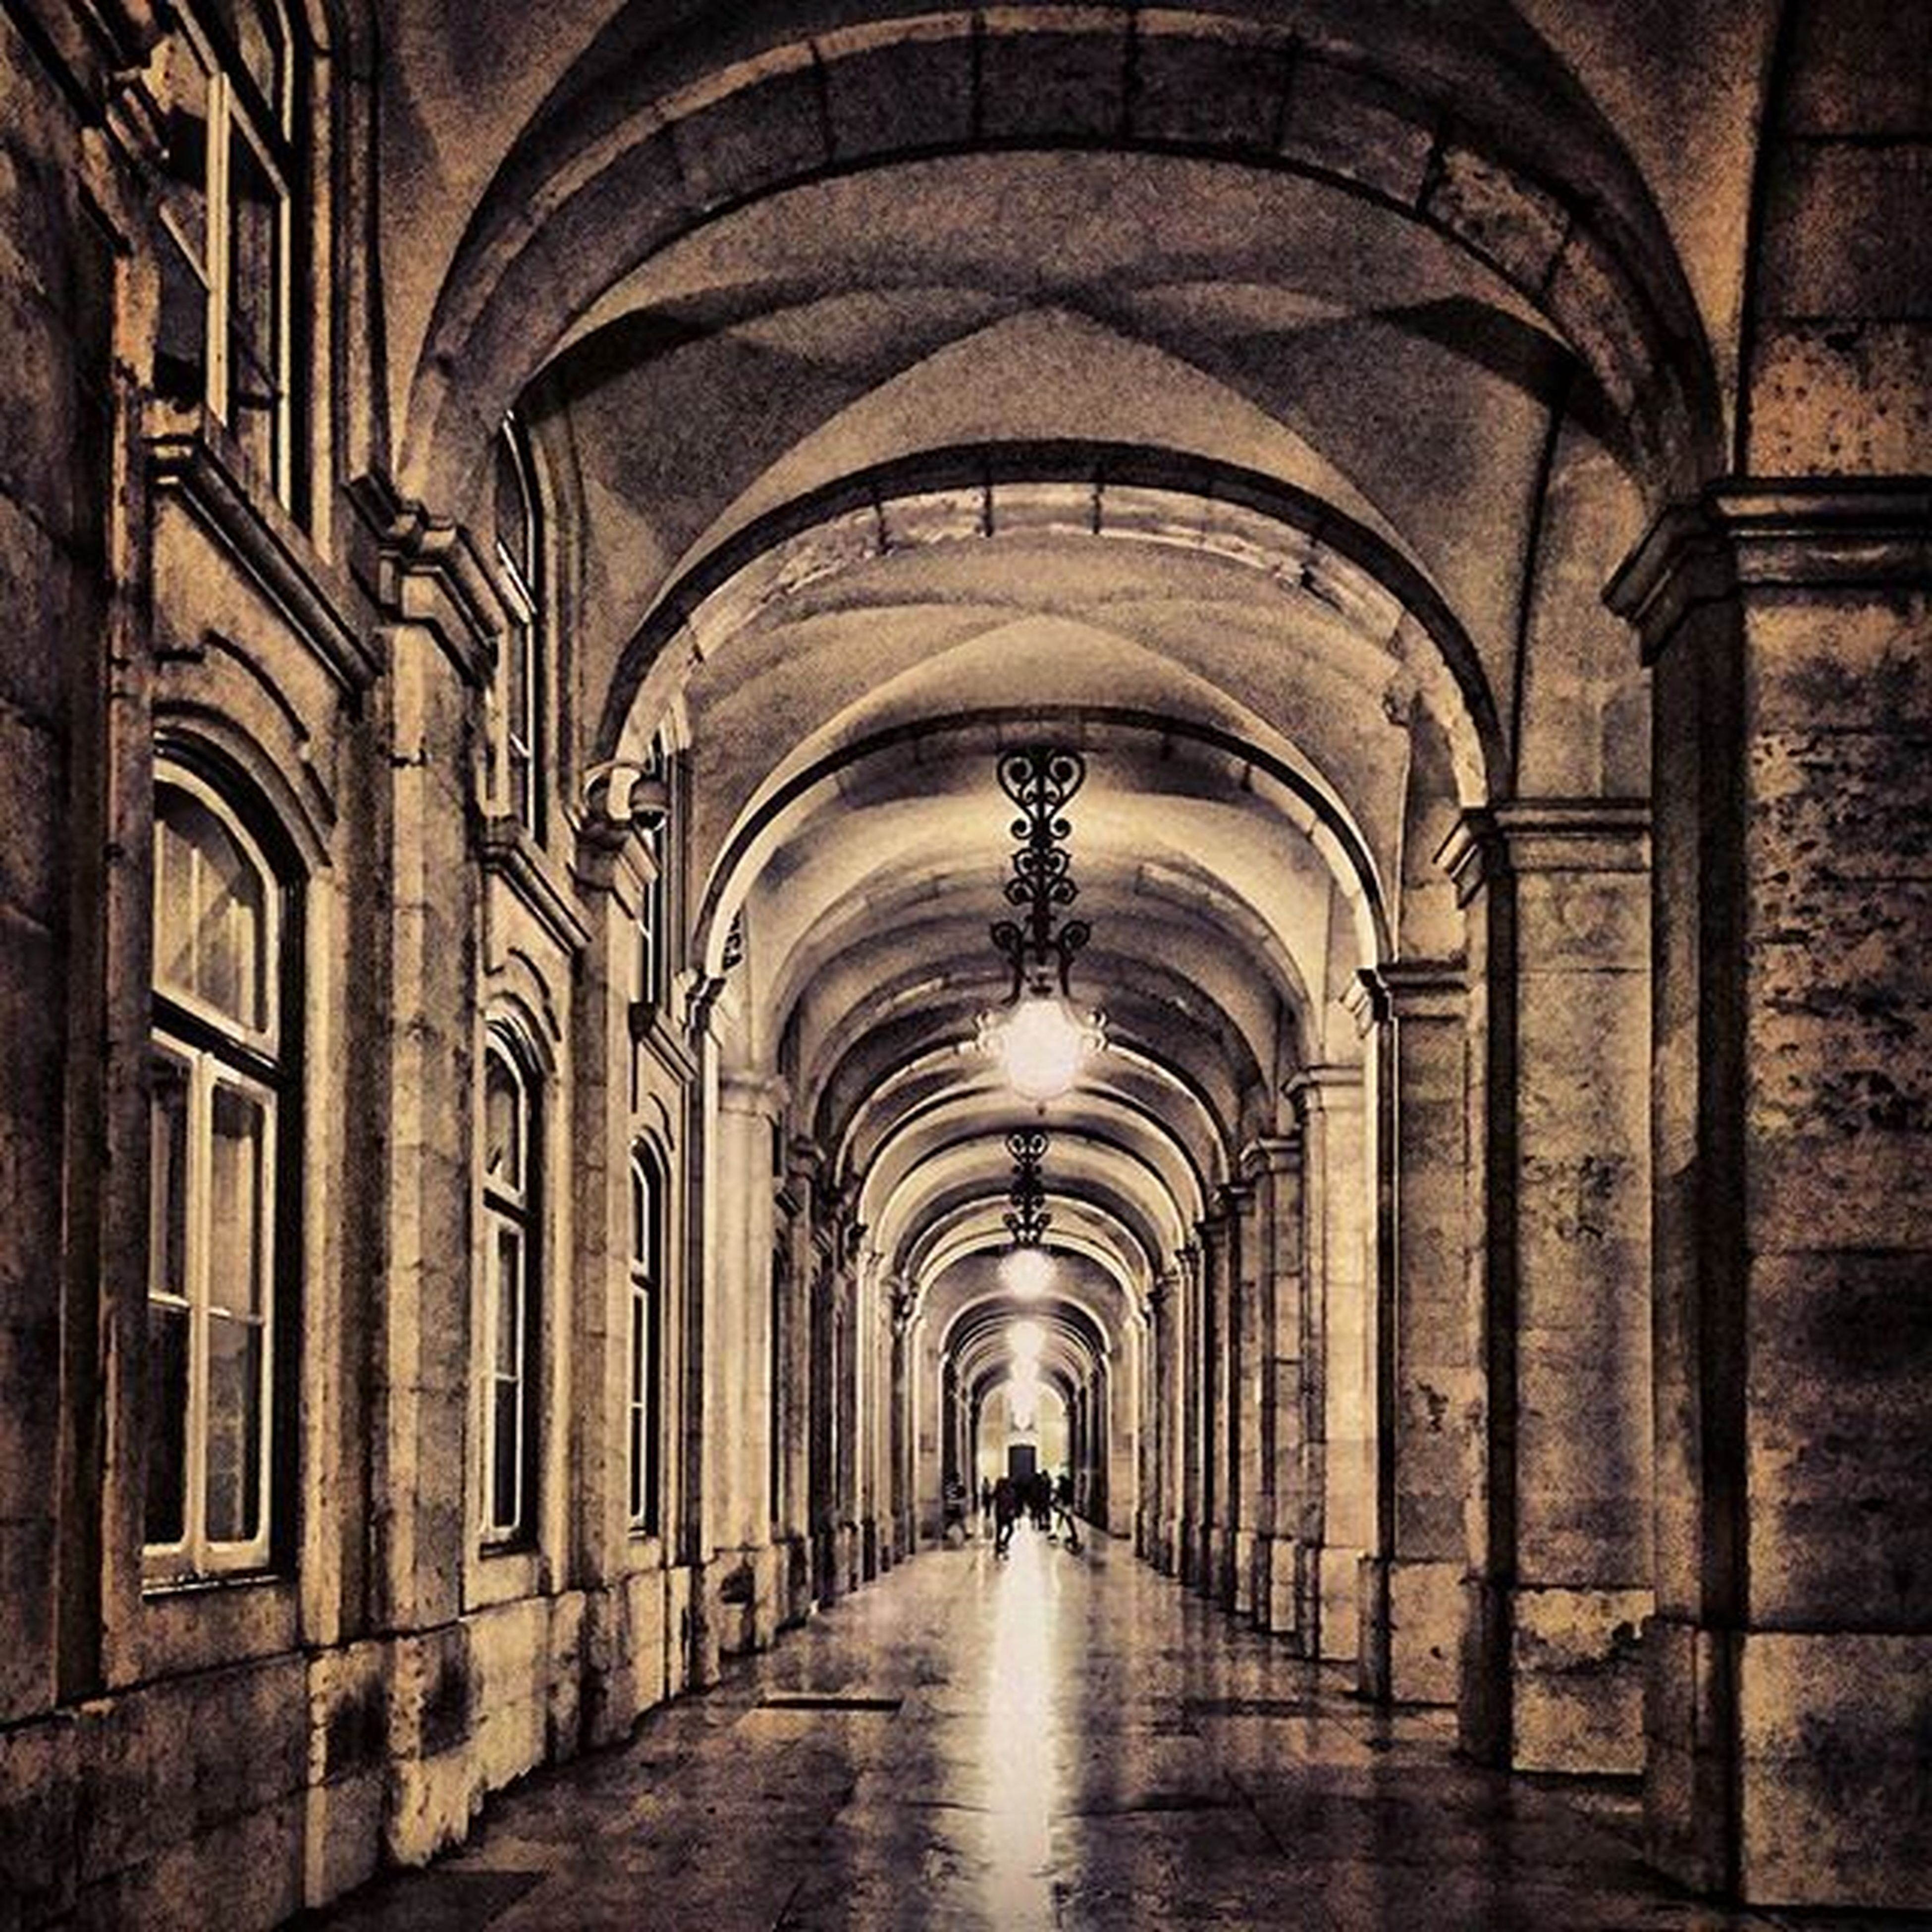 arch, the way forward, indoors, architecture, diminishing perspective, built structure, corridor, vanishing point, archway, ceiling, tunnel, in a row, empty, arched, narrow, walkway, illuminated, cobblestone, walking, building